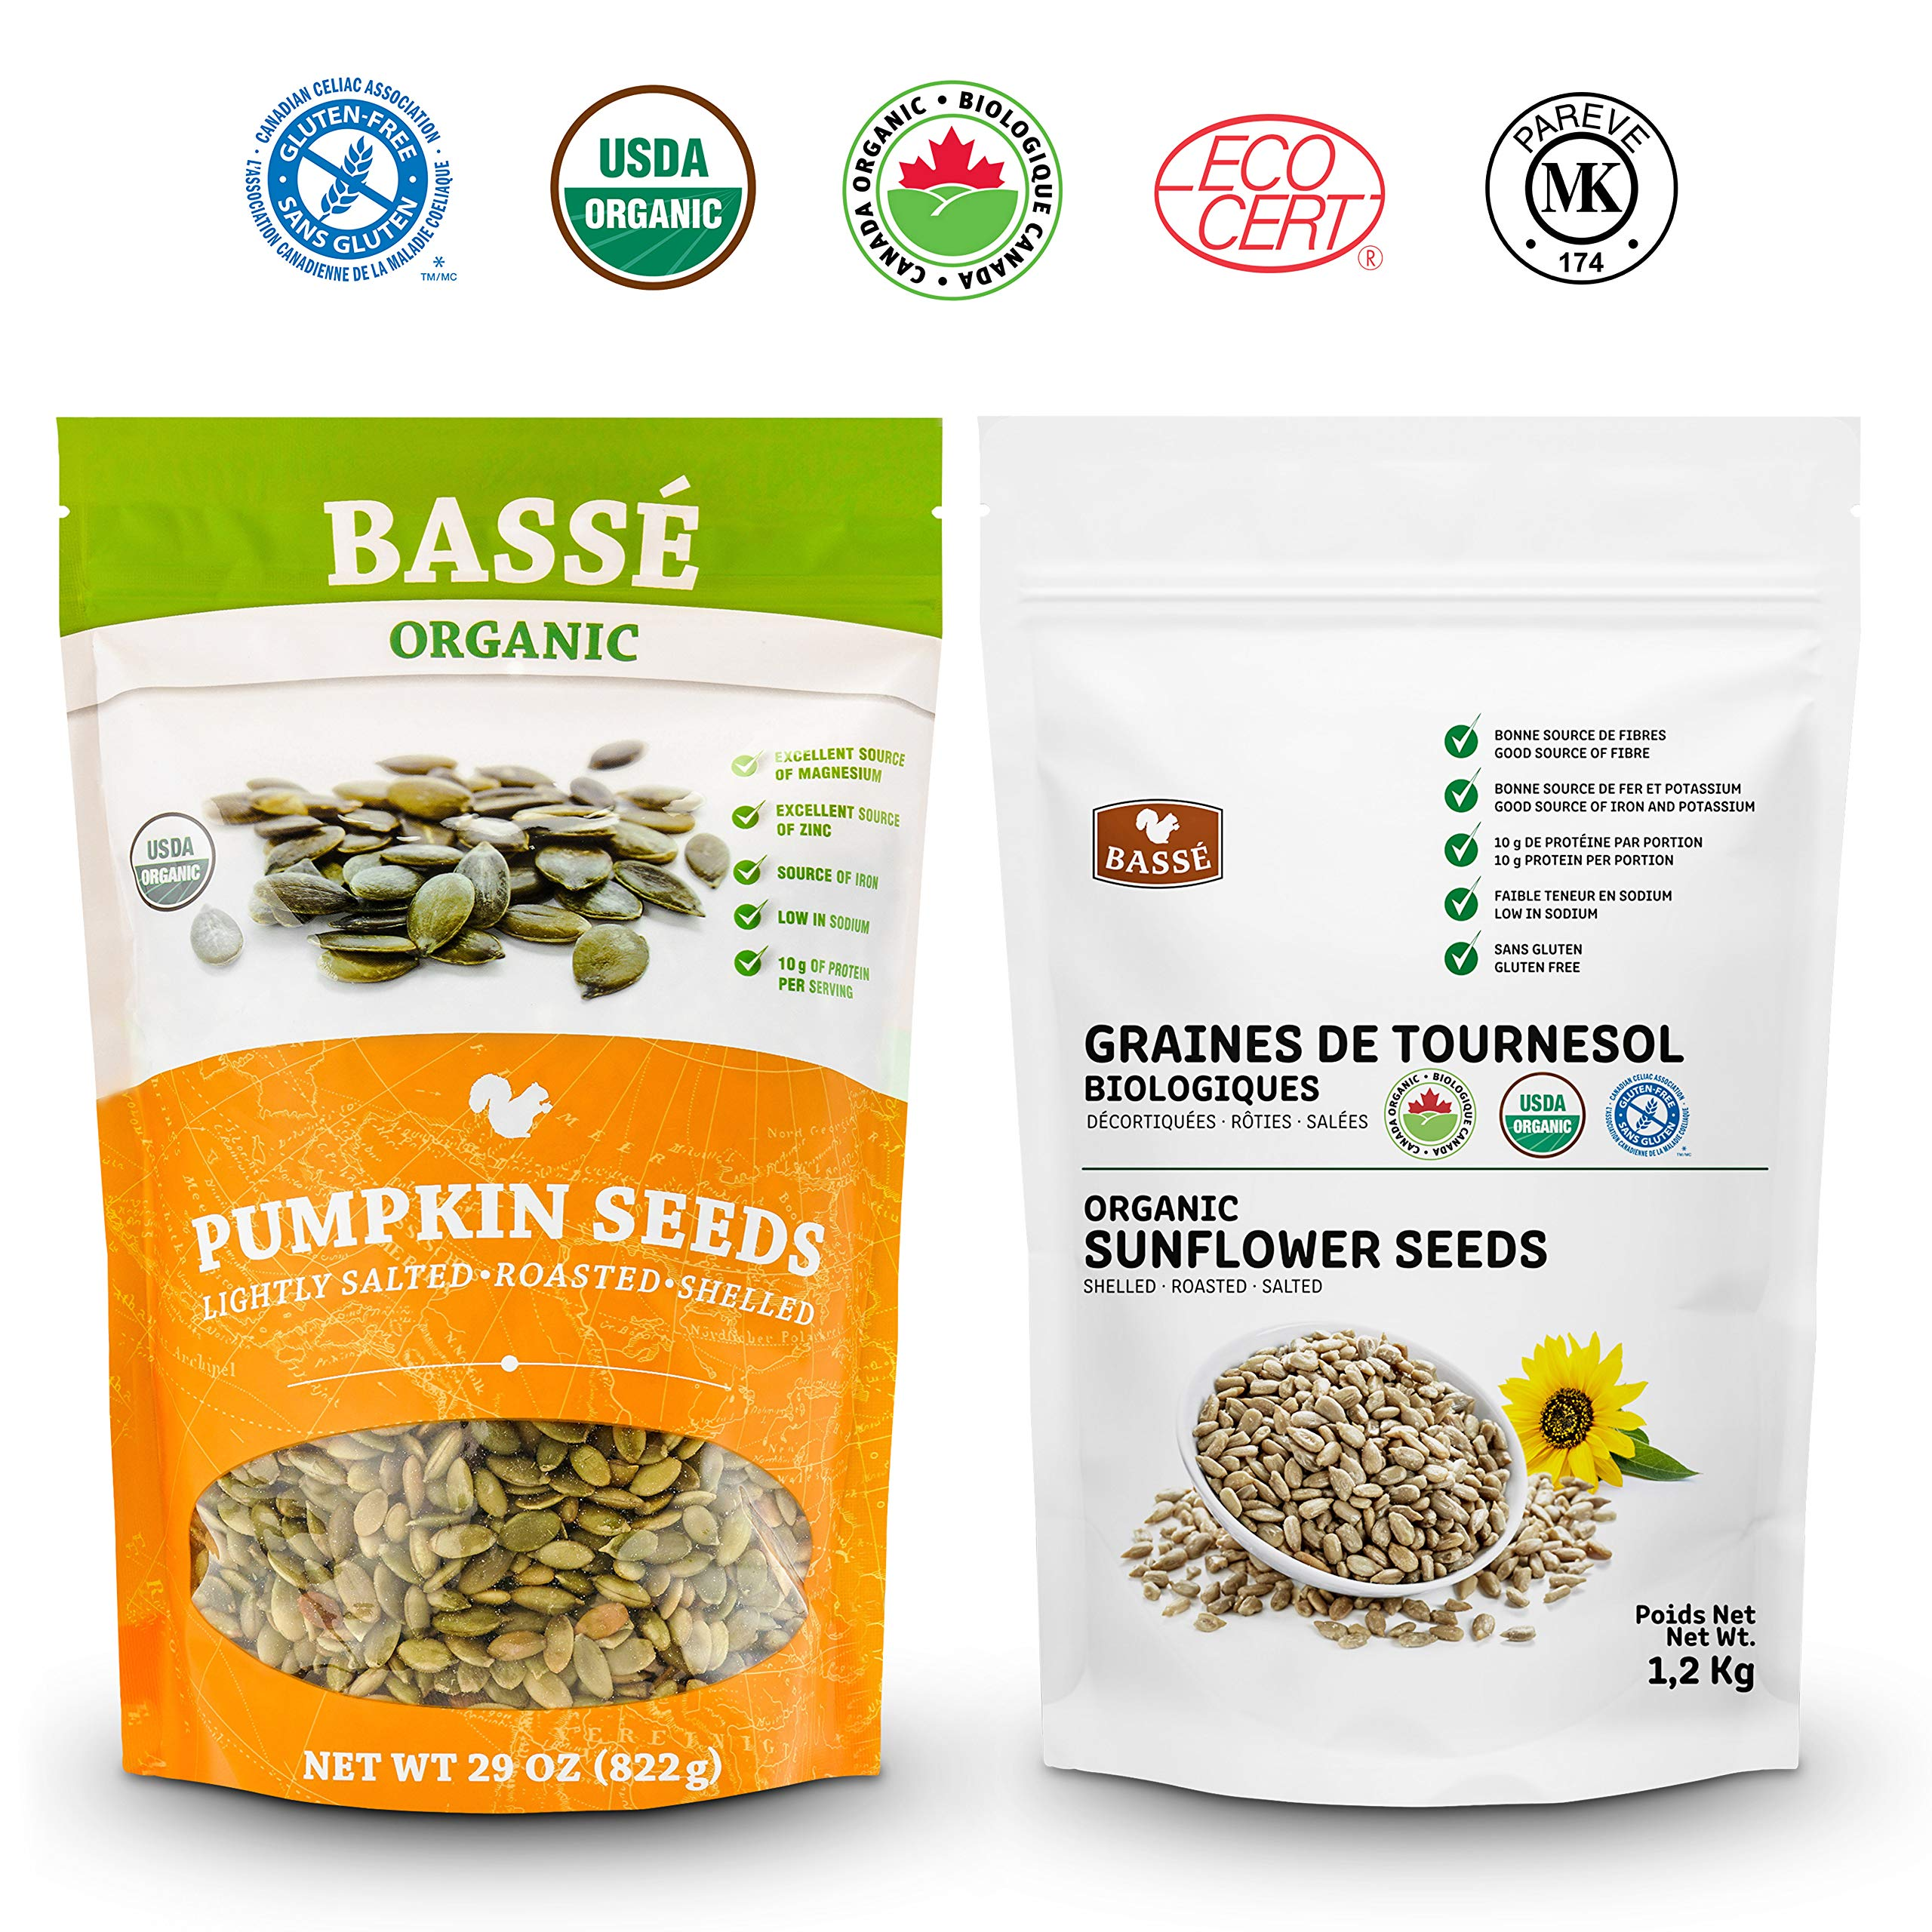 Basse Nuts Organic Pumpkin Seeds and Sunflower Seeds Multi Pack Roasted and Salted USDA and Kosher Certified 4.5 lb